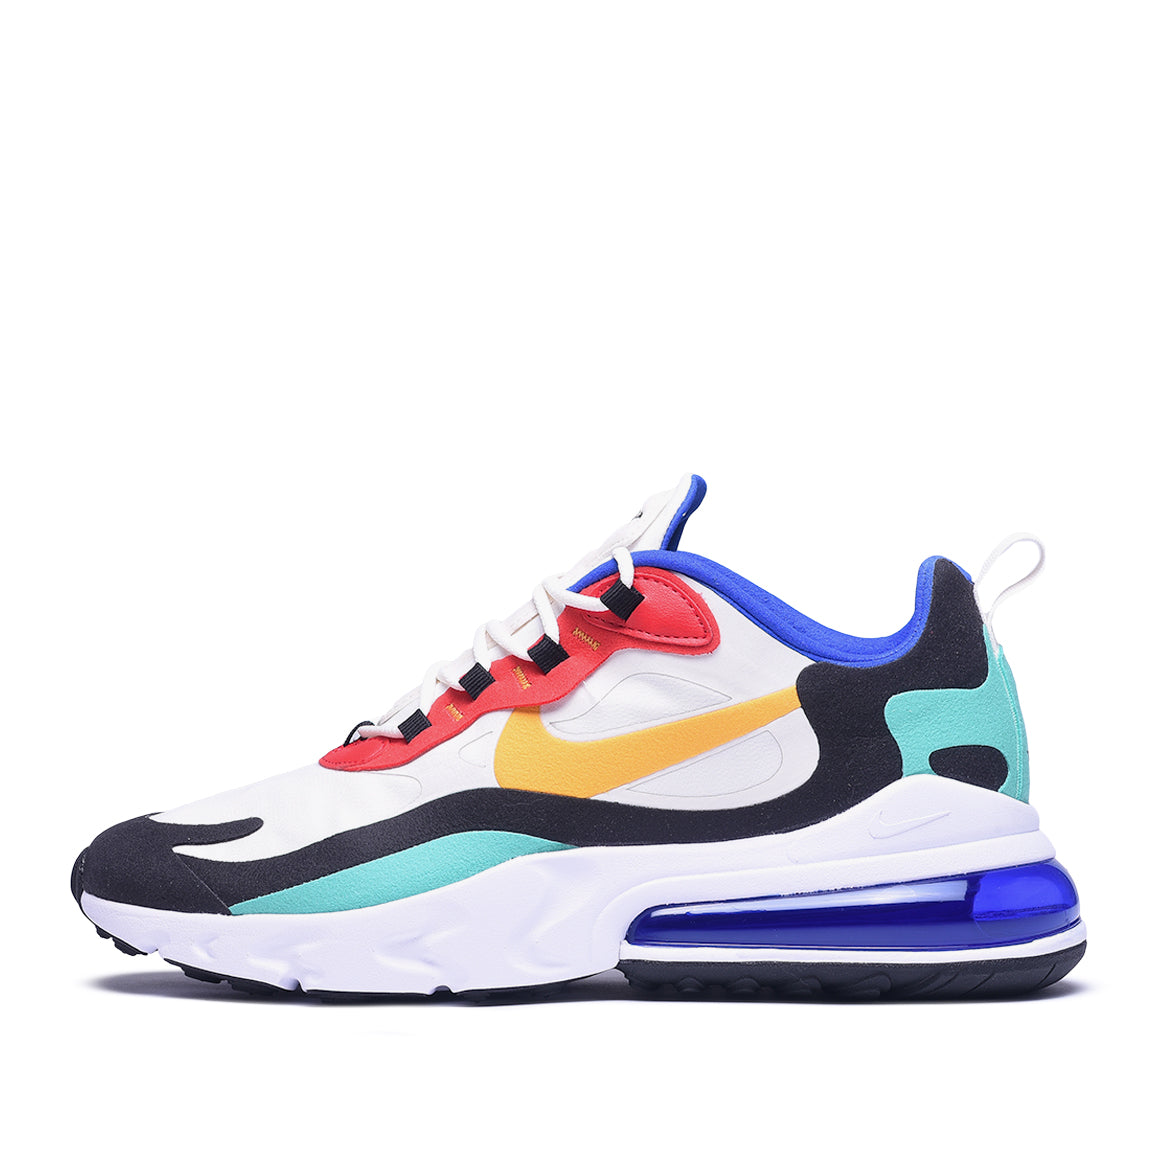 low priced f4b65 7a8ed AIR MAX 270 REACT